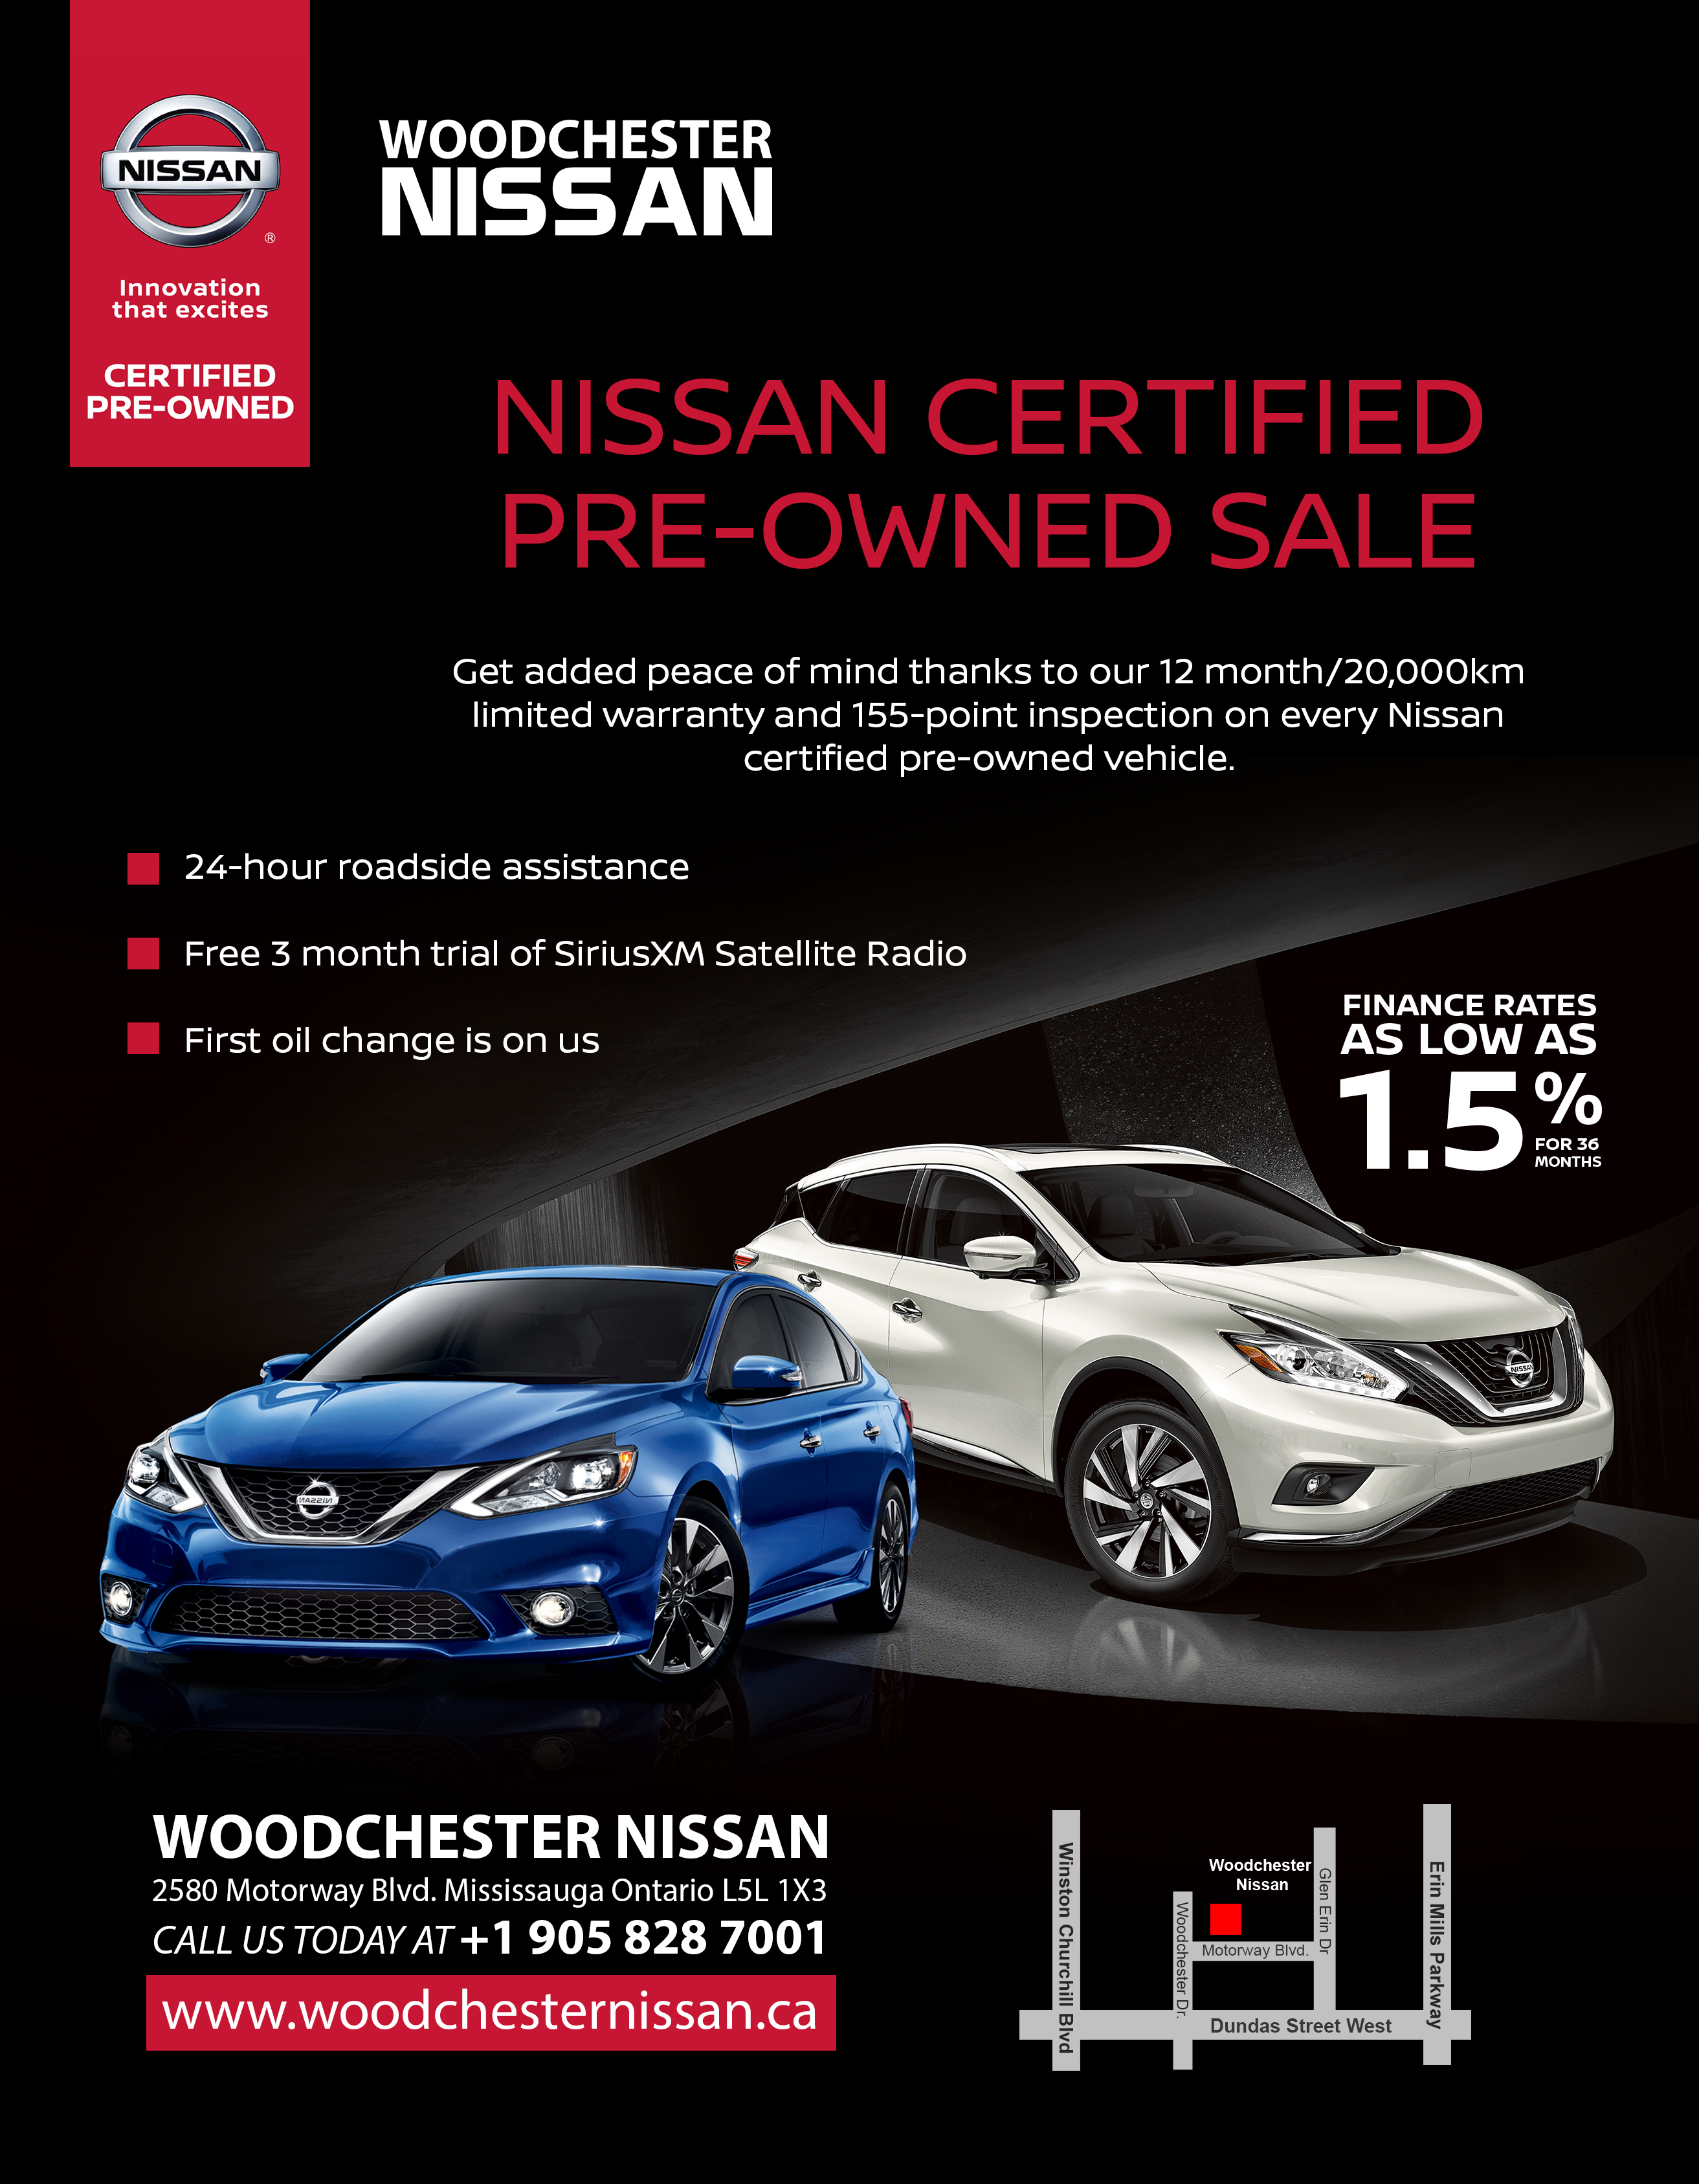 Woodchester Nissan